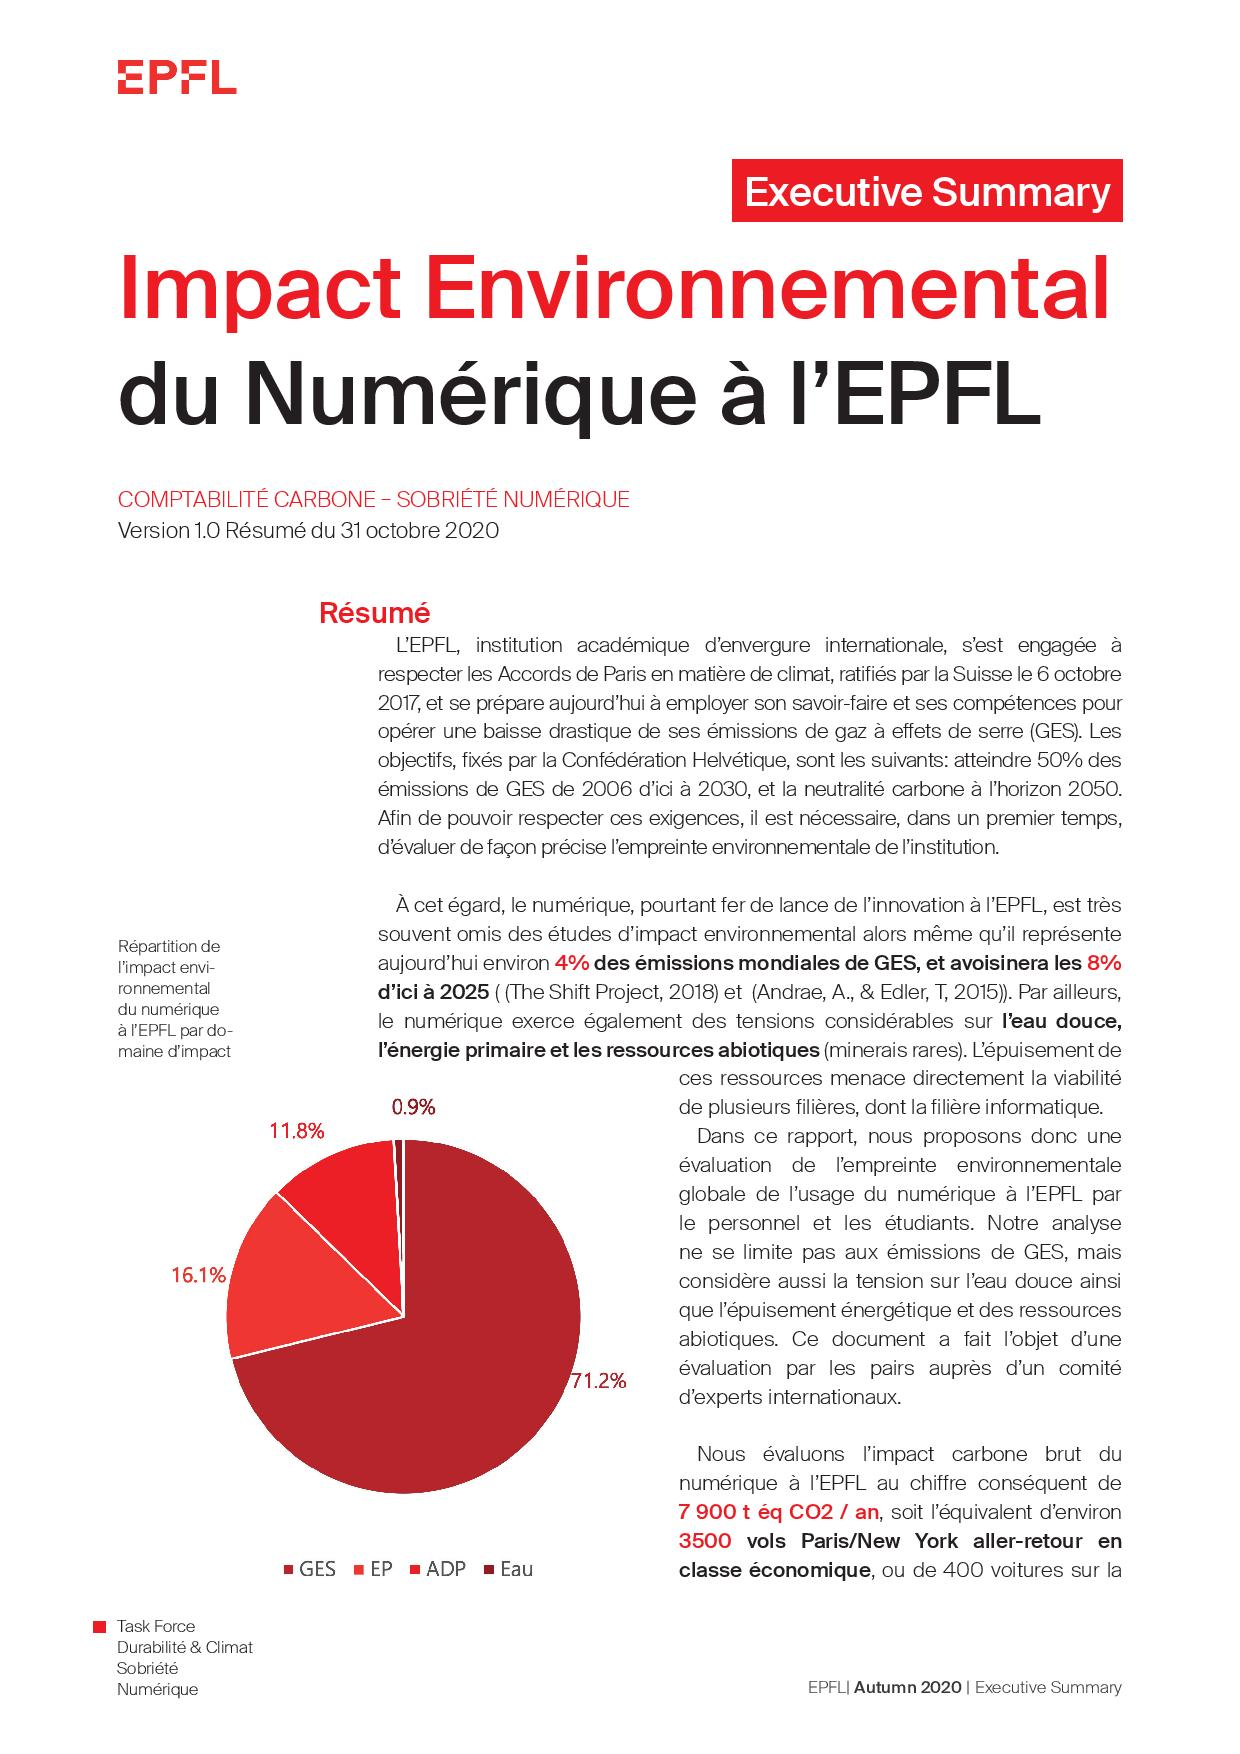 EPFL - Impact of Digital Activities - Executive Summary